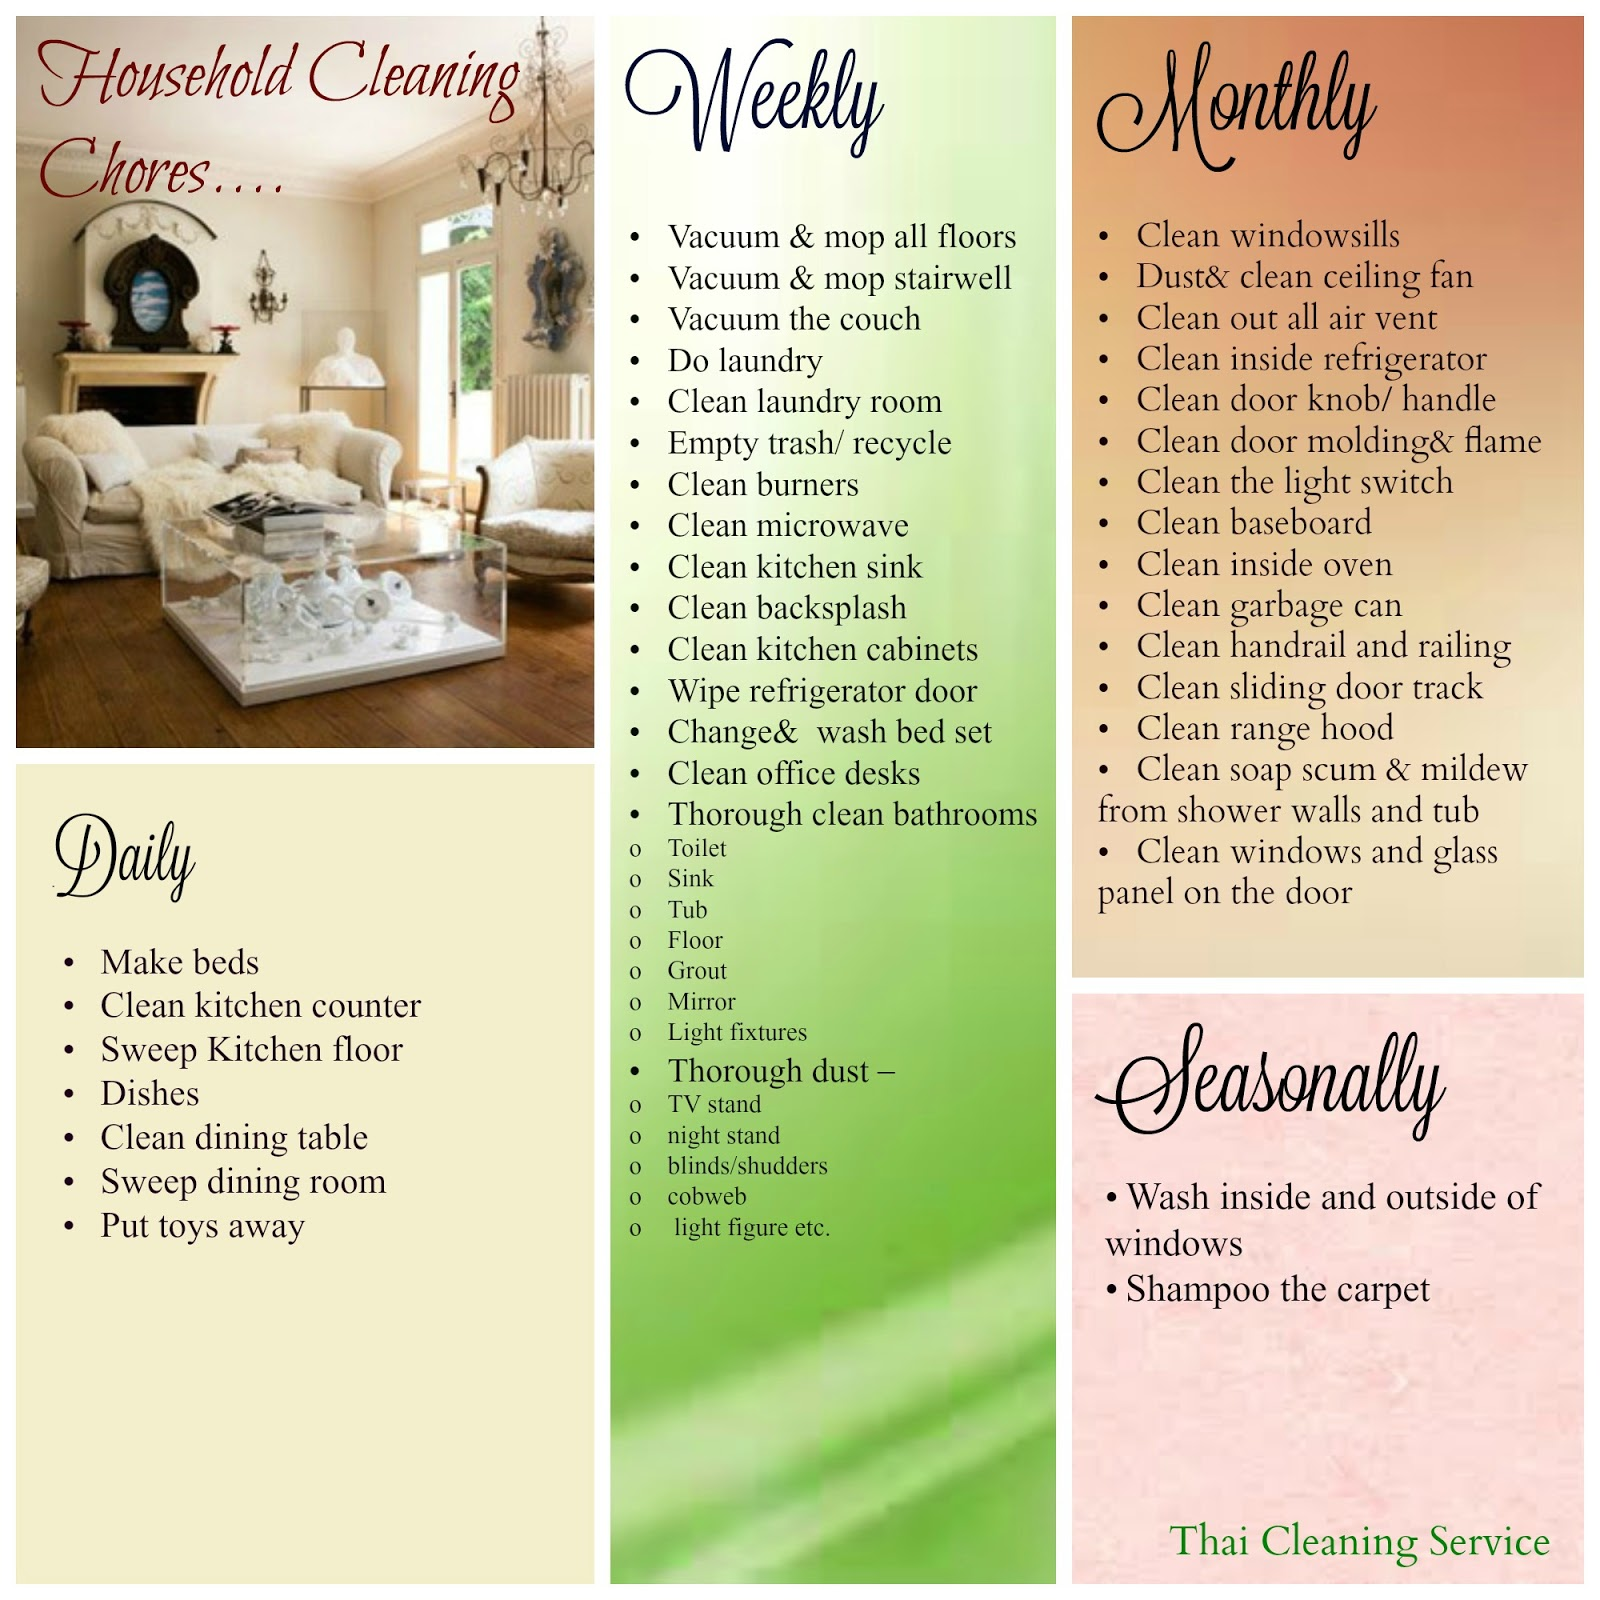 by following the list you dont need to schedule the deep cleaning day or spring cleaning at all because the house will always sparkling